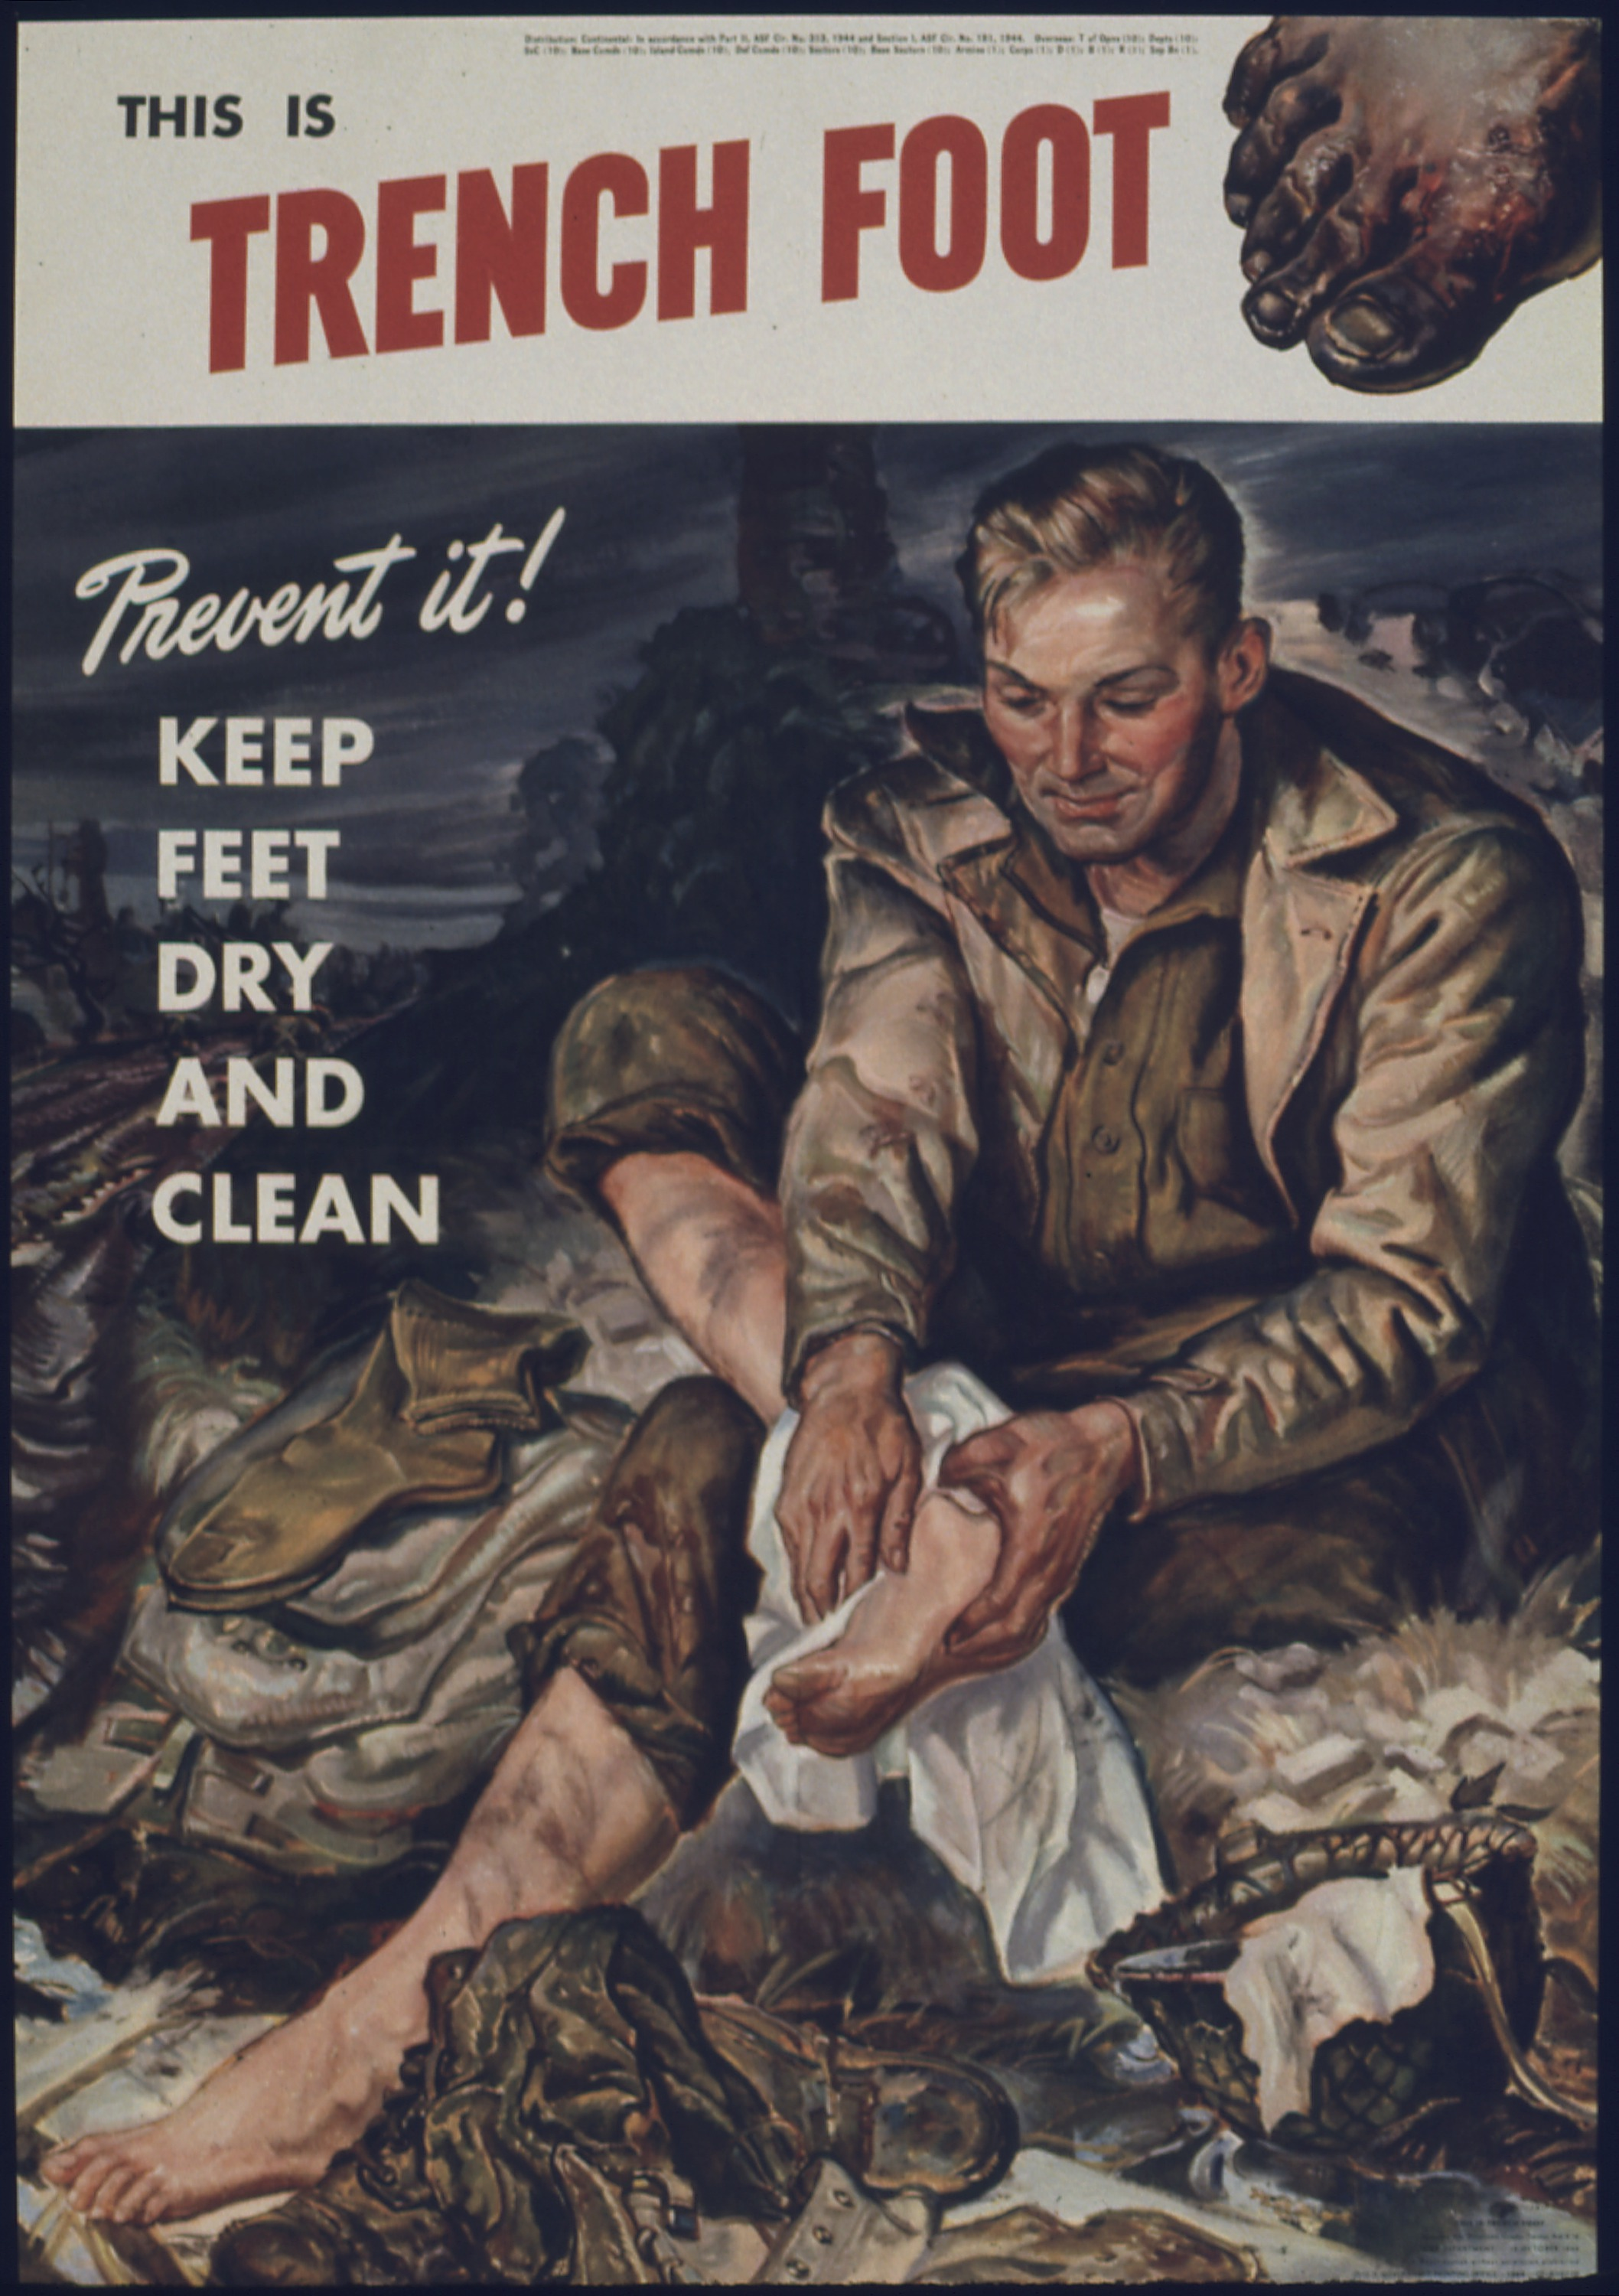 life in the trenches letter home writework this is trench foot prevent it^ keep feet dry and clean nara